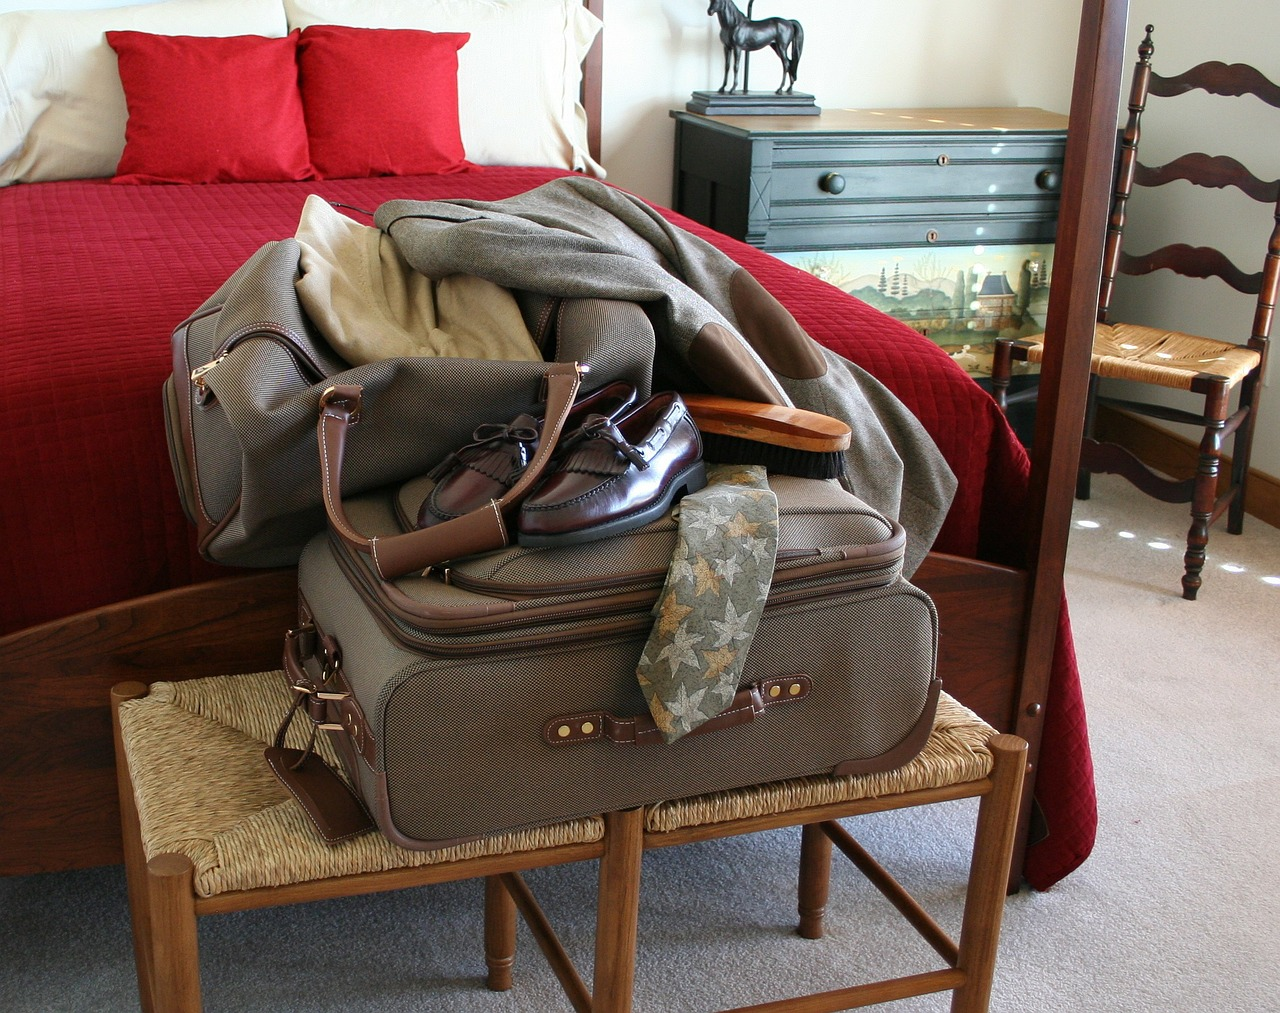 How to Fit a Month's Worth of Stuff Inside a Carry-On Luggage